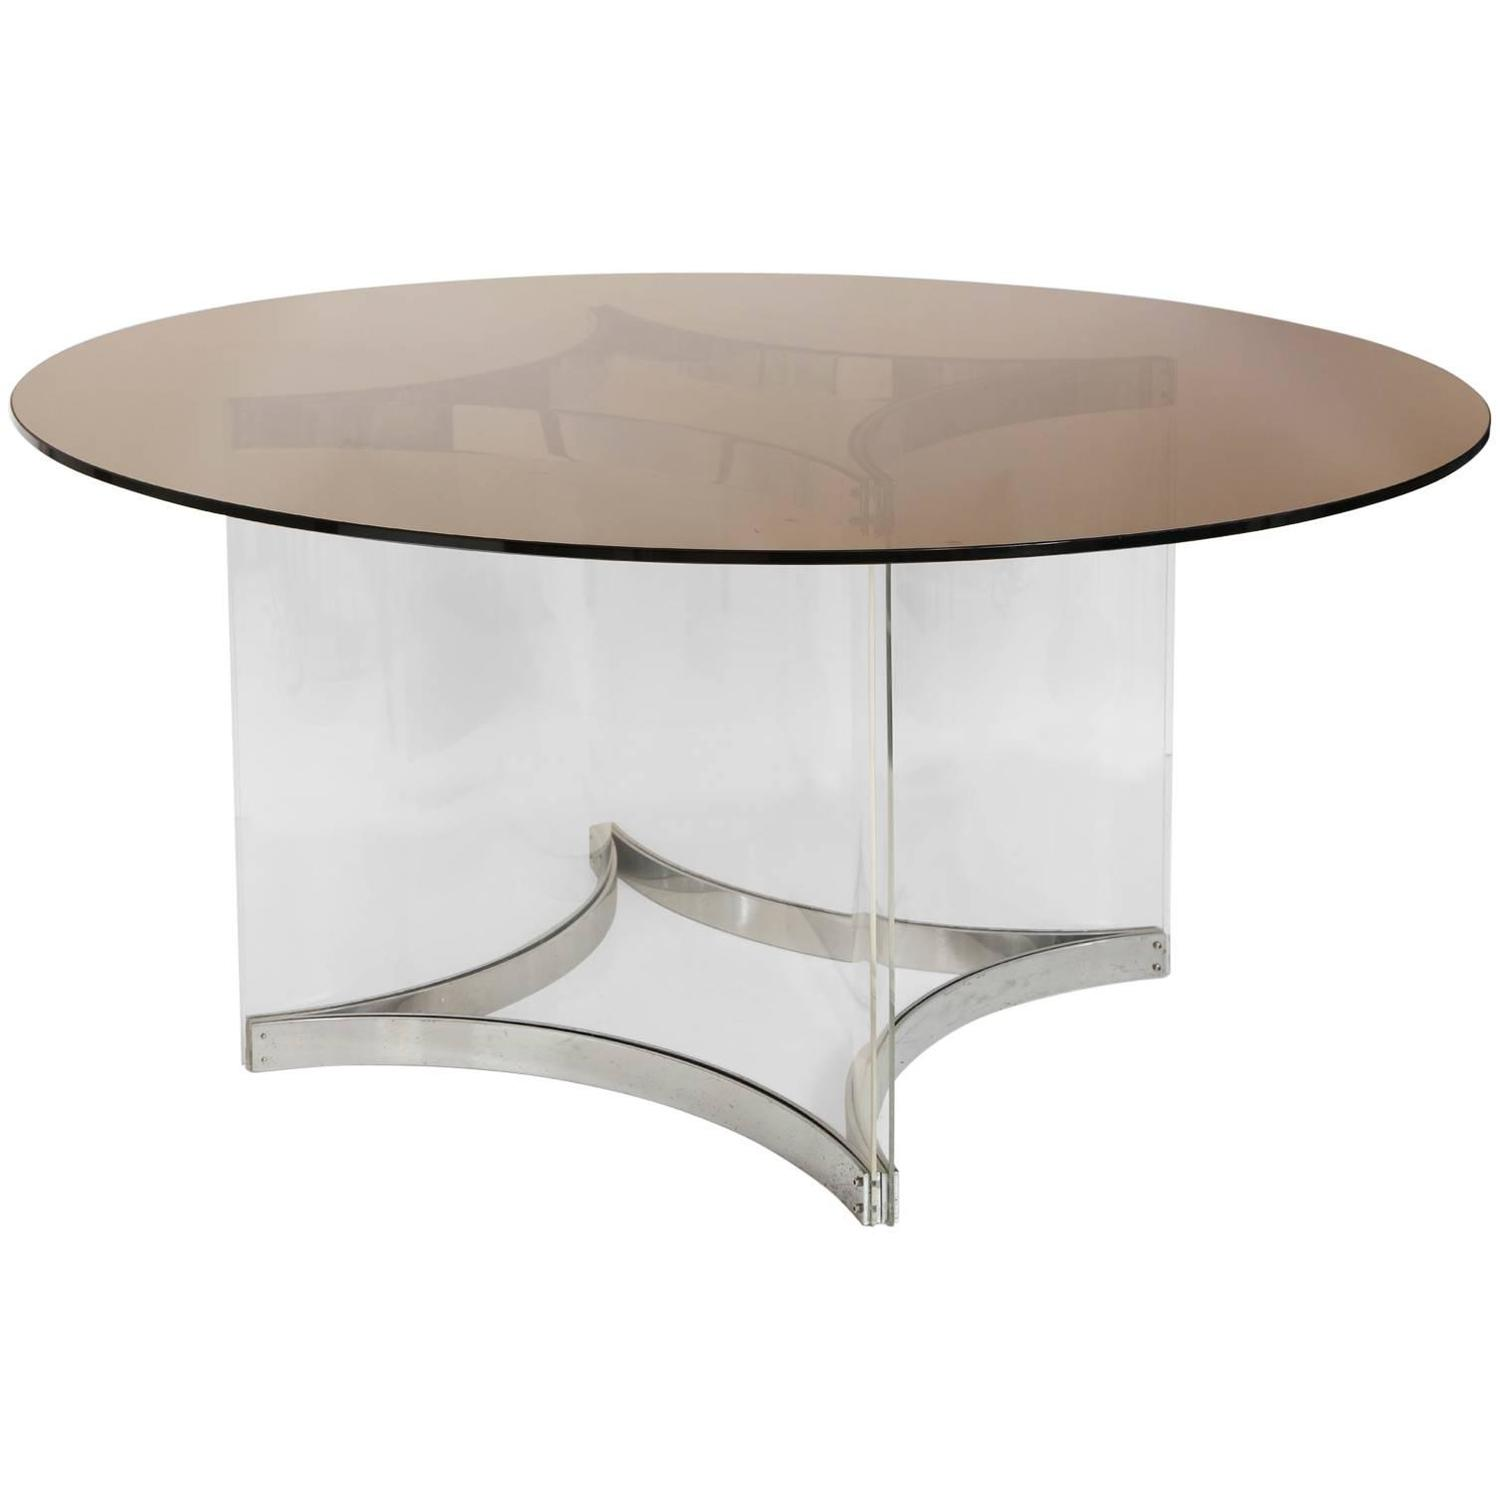 Alessandro Albrizzi Lucite and Chrome Dining Table circa  : 5320603z from www.1stdibs.com size 1500 x 1500 jpeg 43kB